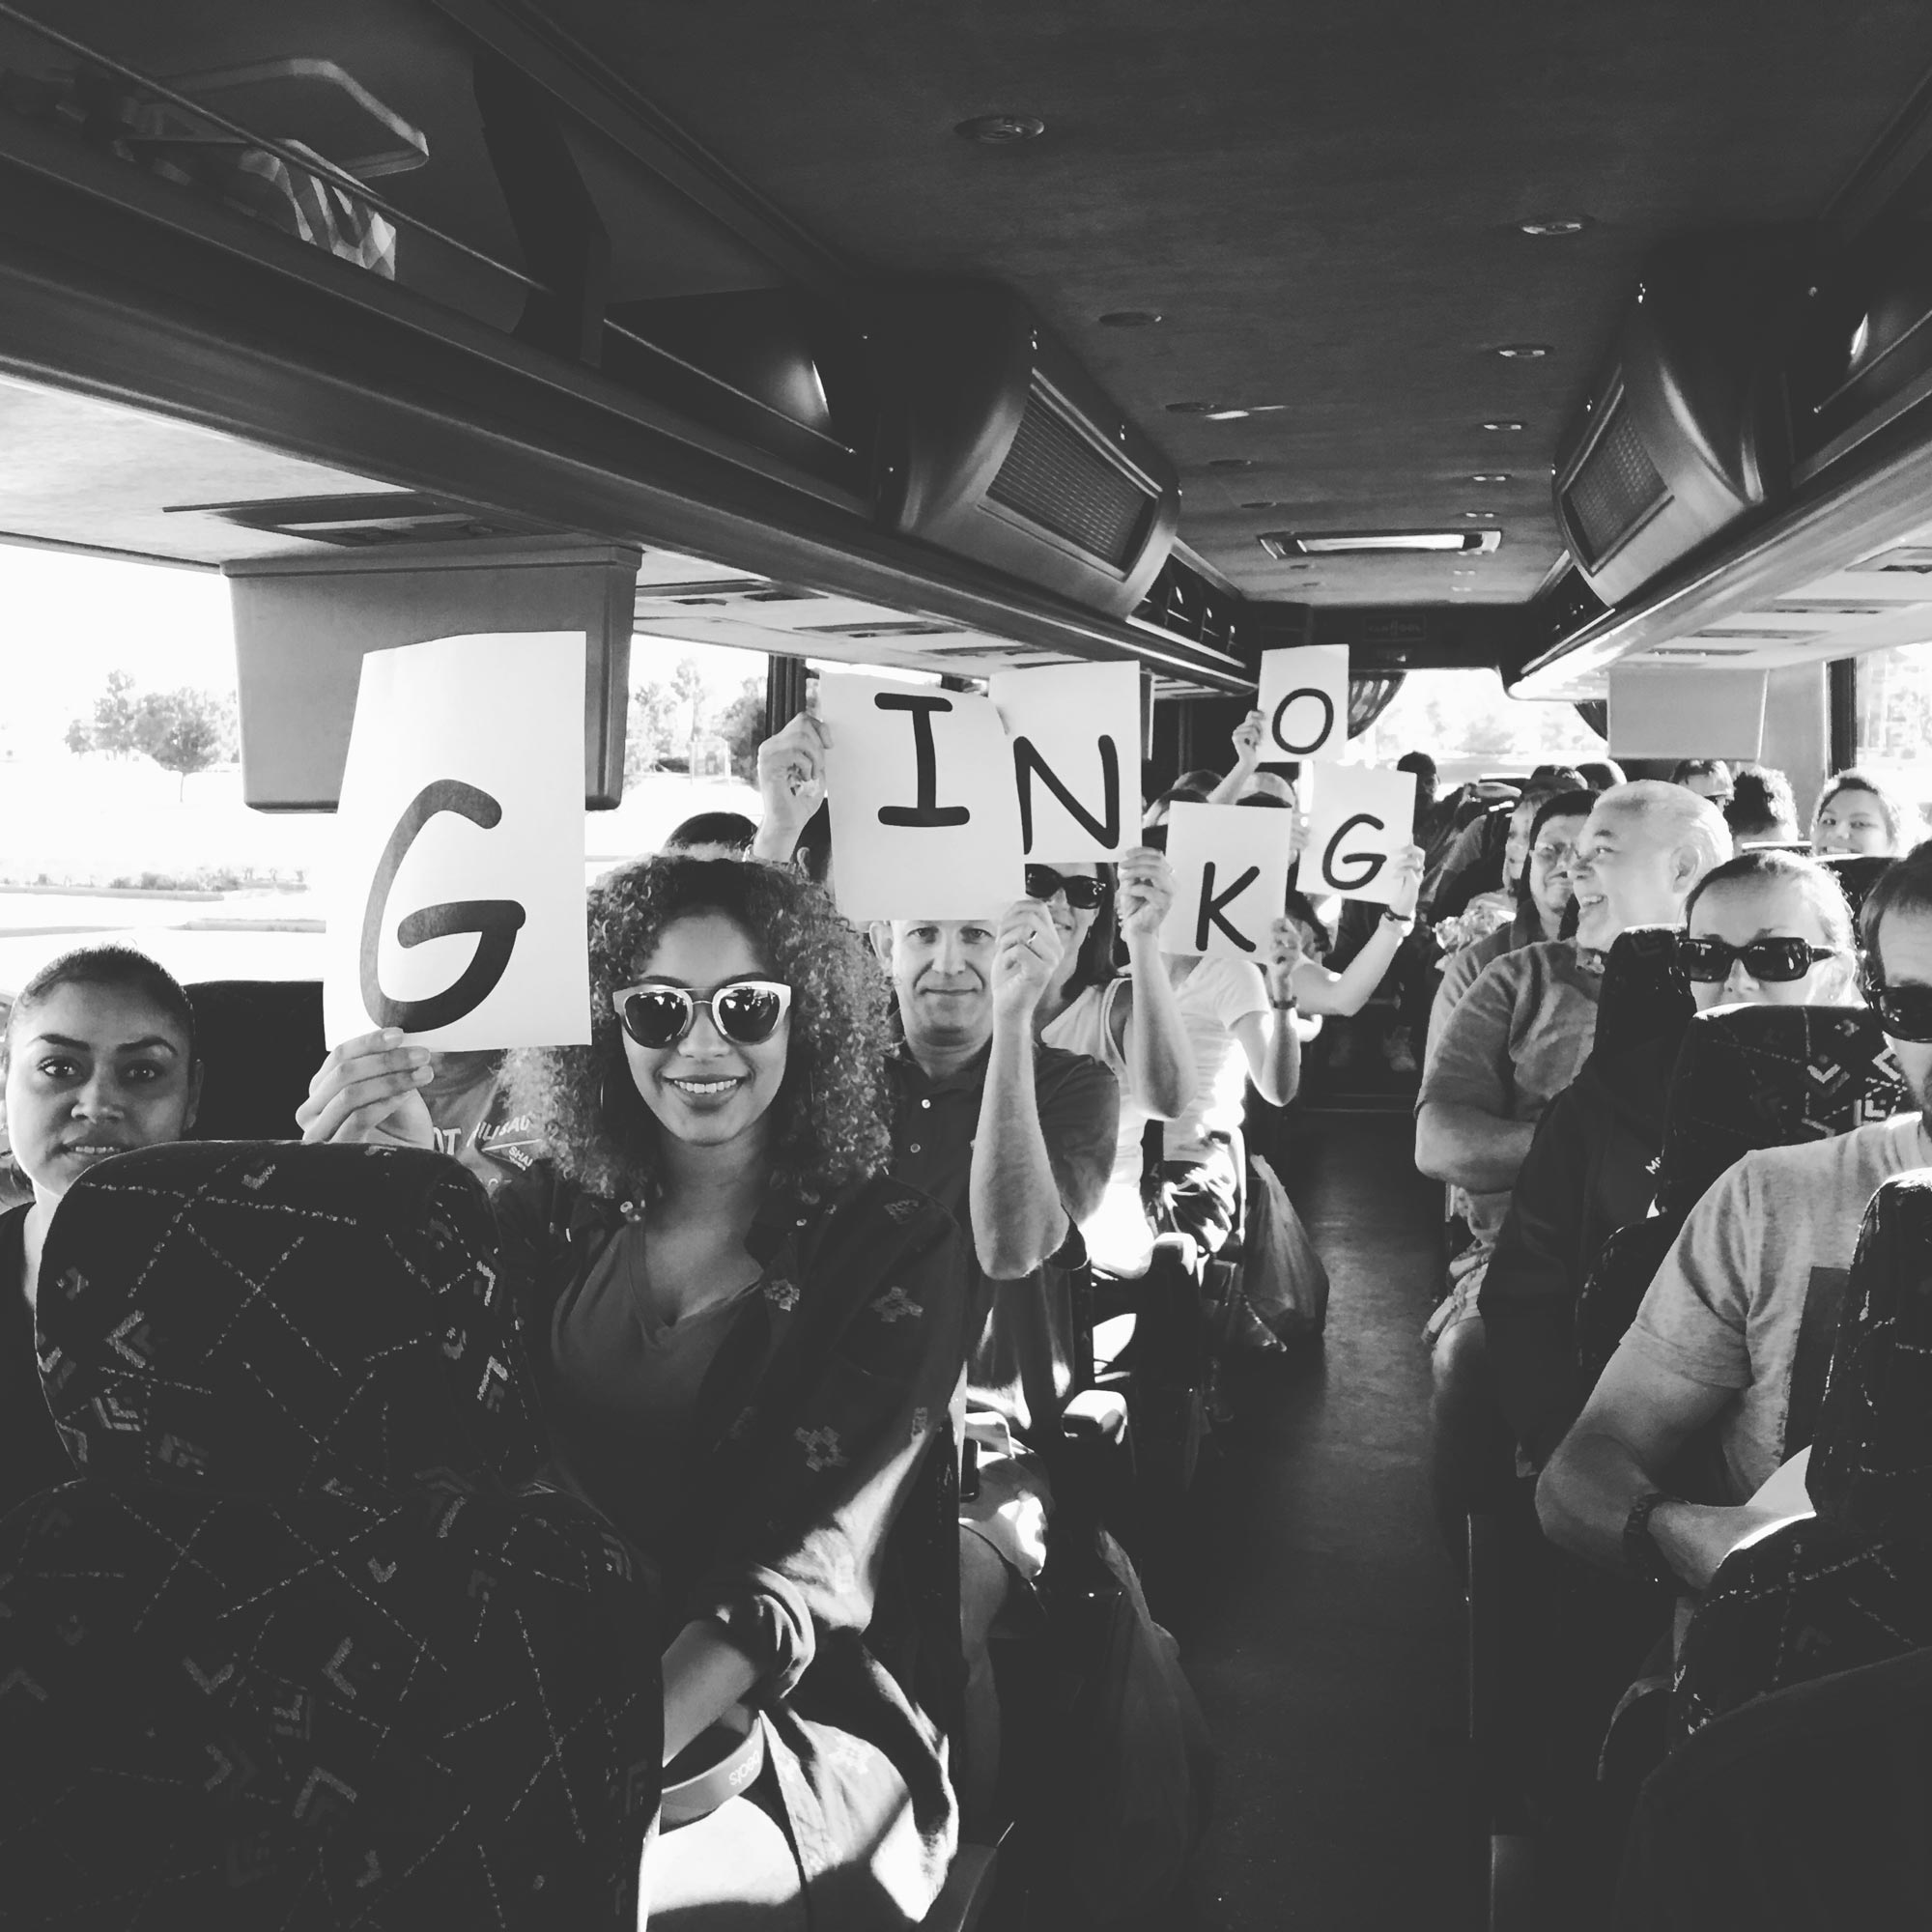 Ginkgo Residential | People Holding Up Signs in a Bus That Spell Out Ginkgo